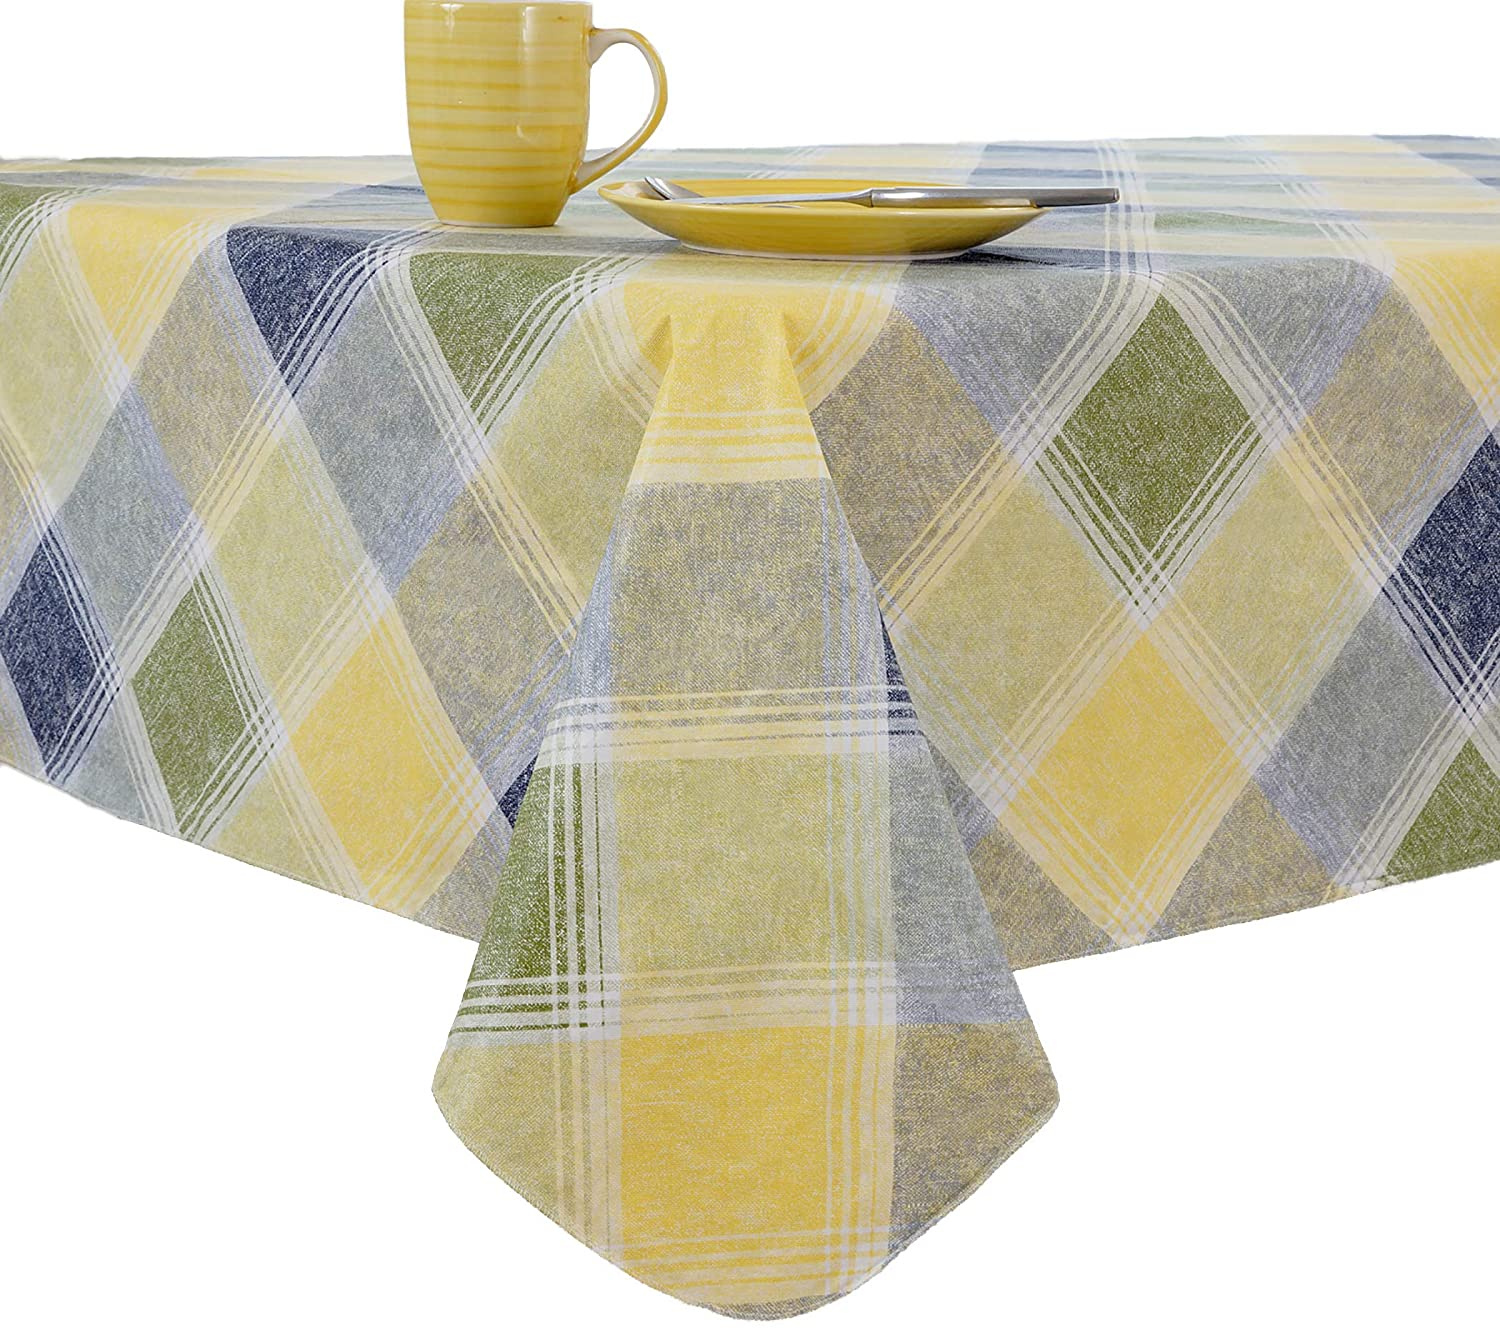 EVERYDAY LUXURIES Harmony Plaid Flannel Backed Indoor Outdoor Vinyl Table Linens, 60-Inch by 84-Inch Oval, Blue